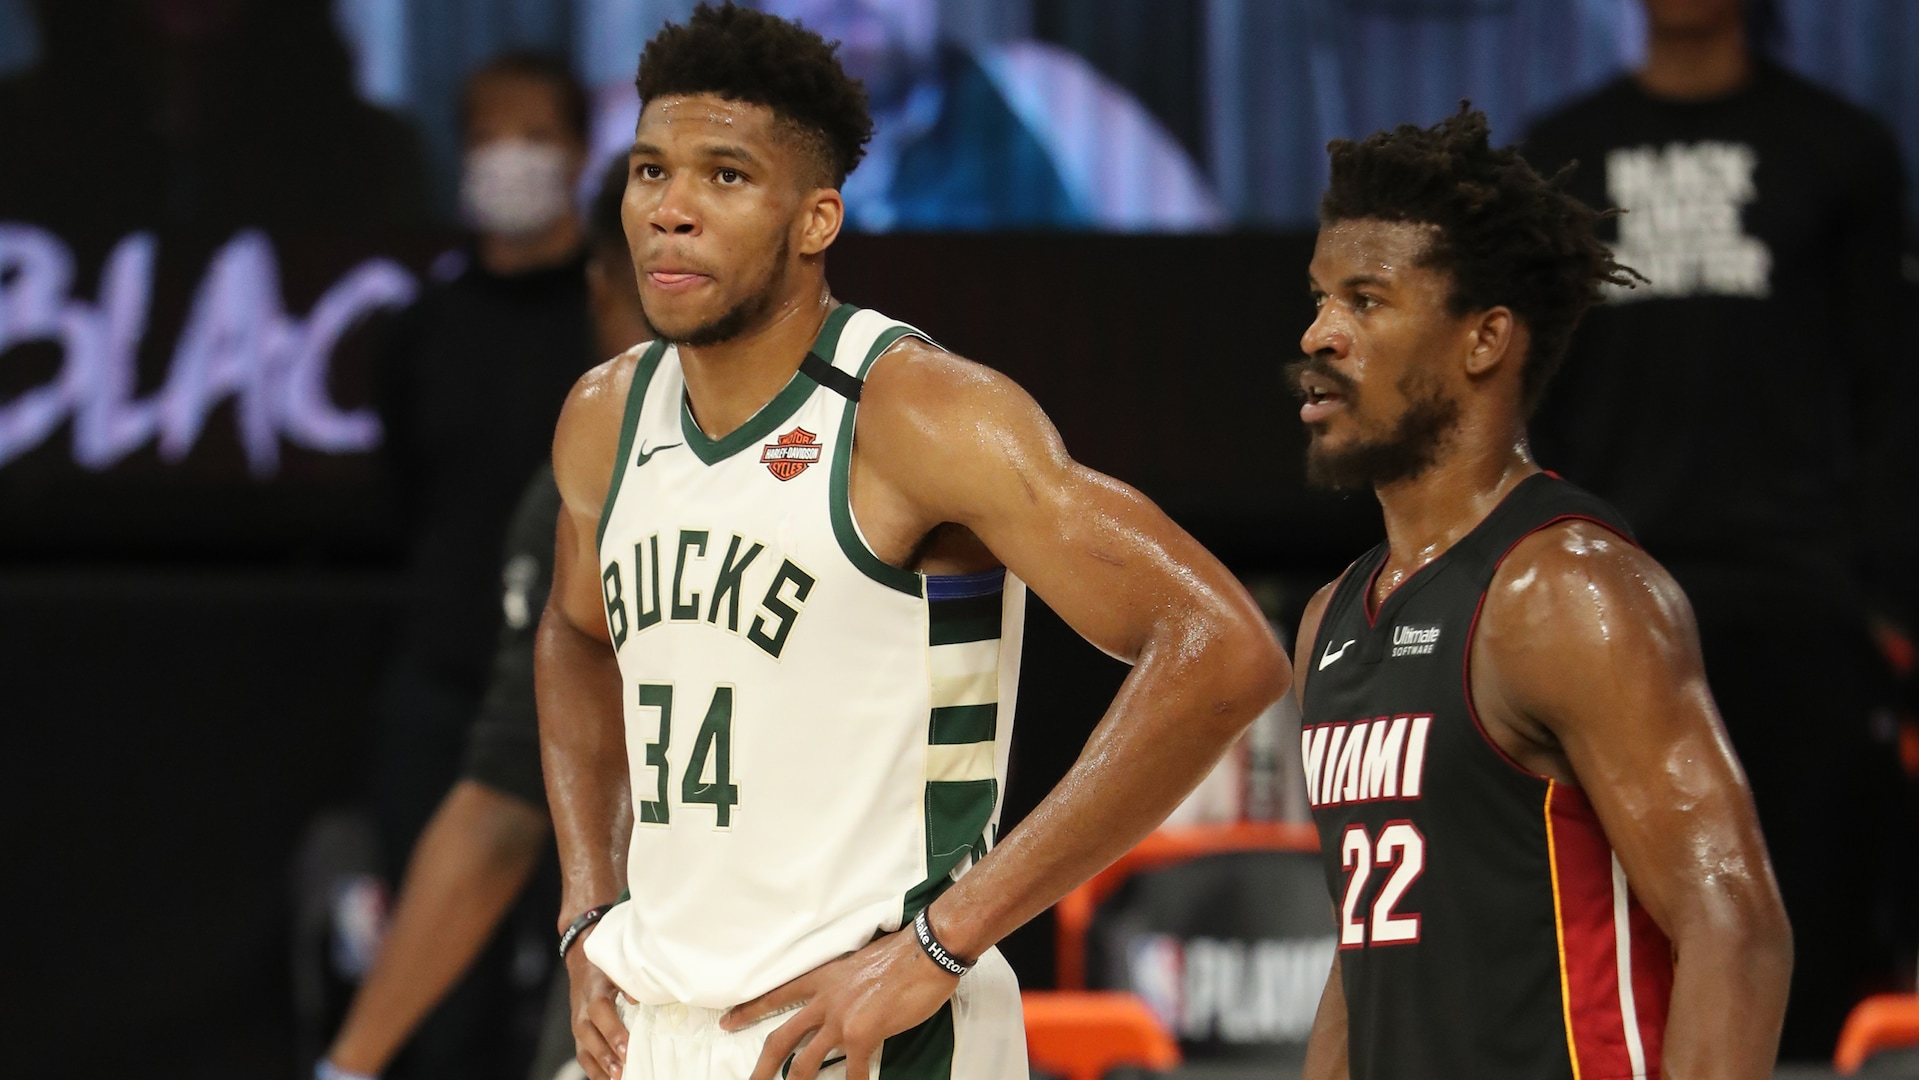 Heat's record-setting 4th quarter pushes Bucks to the brink